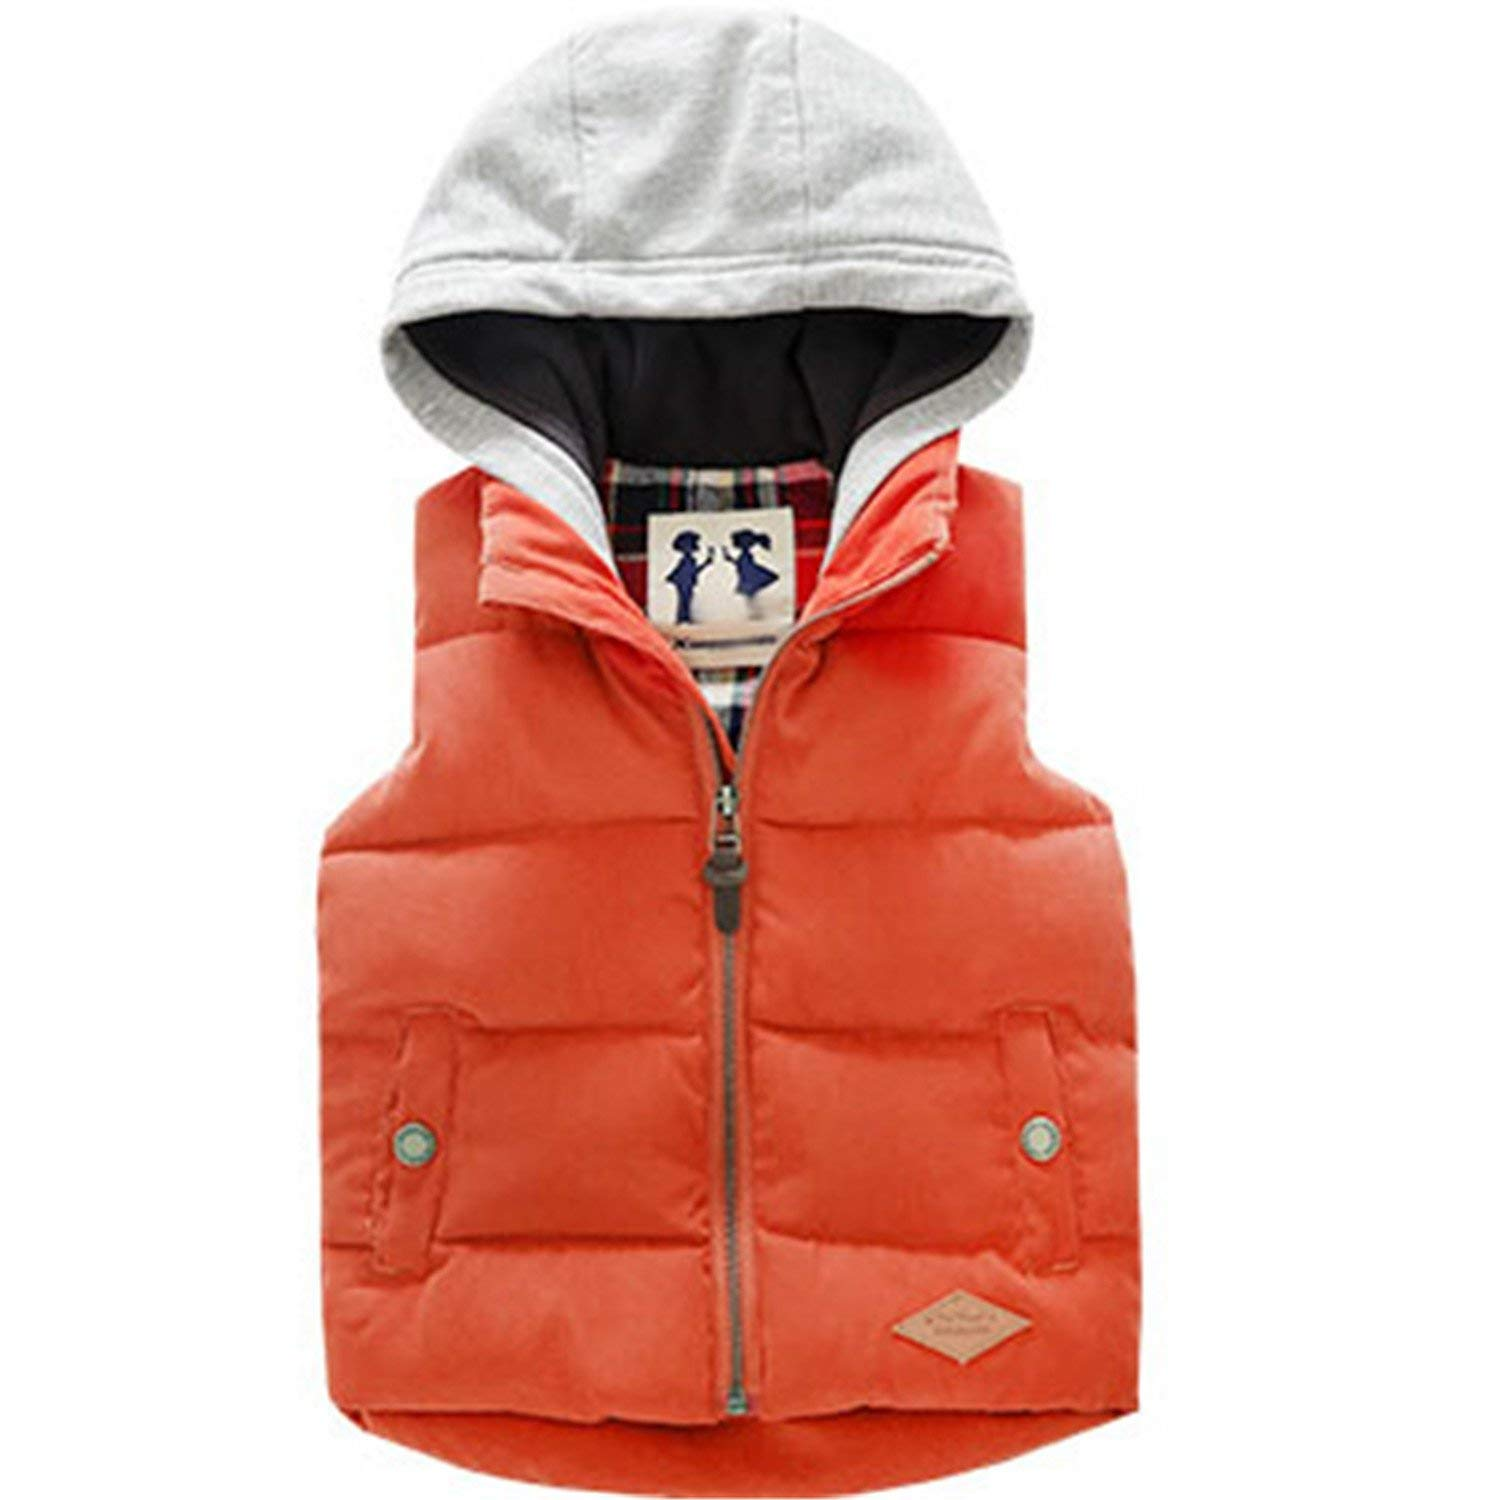 a14e995720ea Get Quotations · Mofgr Winter Sleeveless Kids Vest Boys Outerwear Warm  Children Vests Waistcoats Liner Jacket Coat for 3